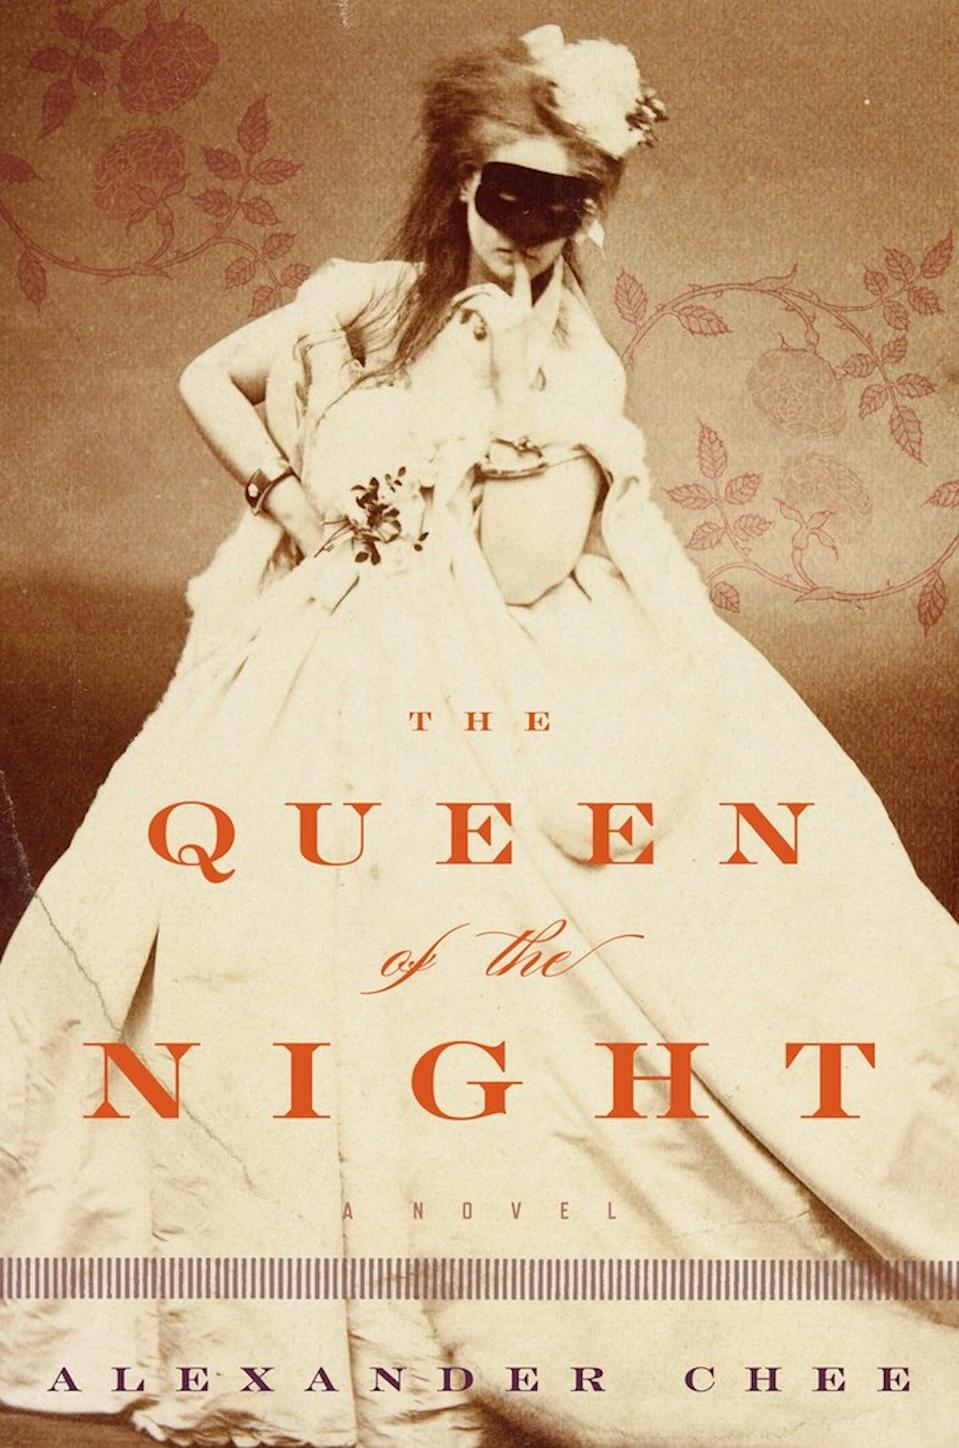 """""""The Queen of the Night"""" follows 15 years after Alexander Chee's debut."""